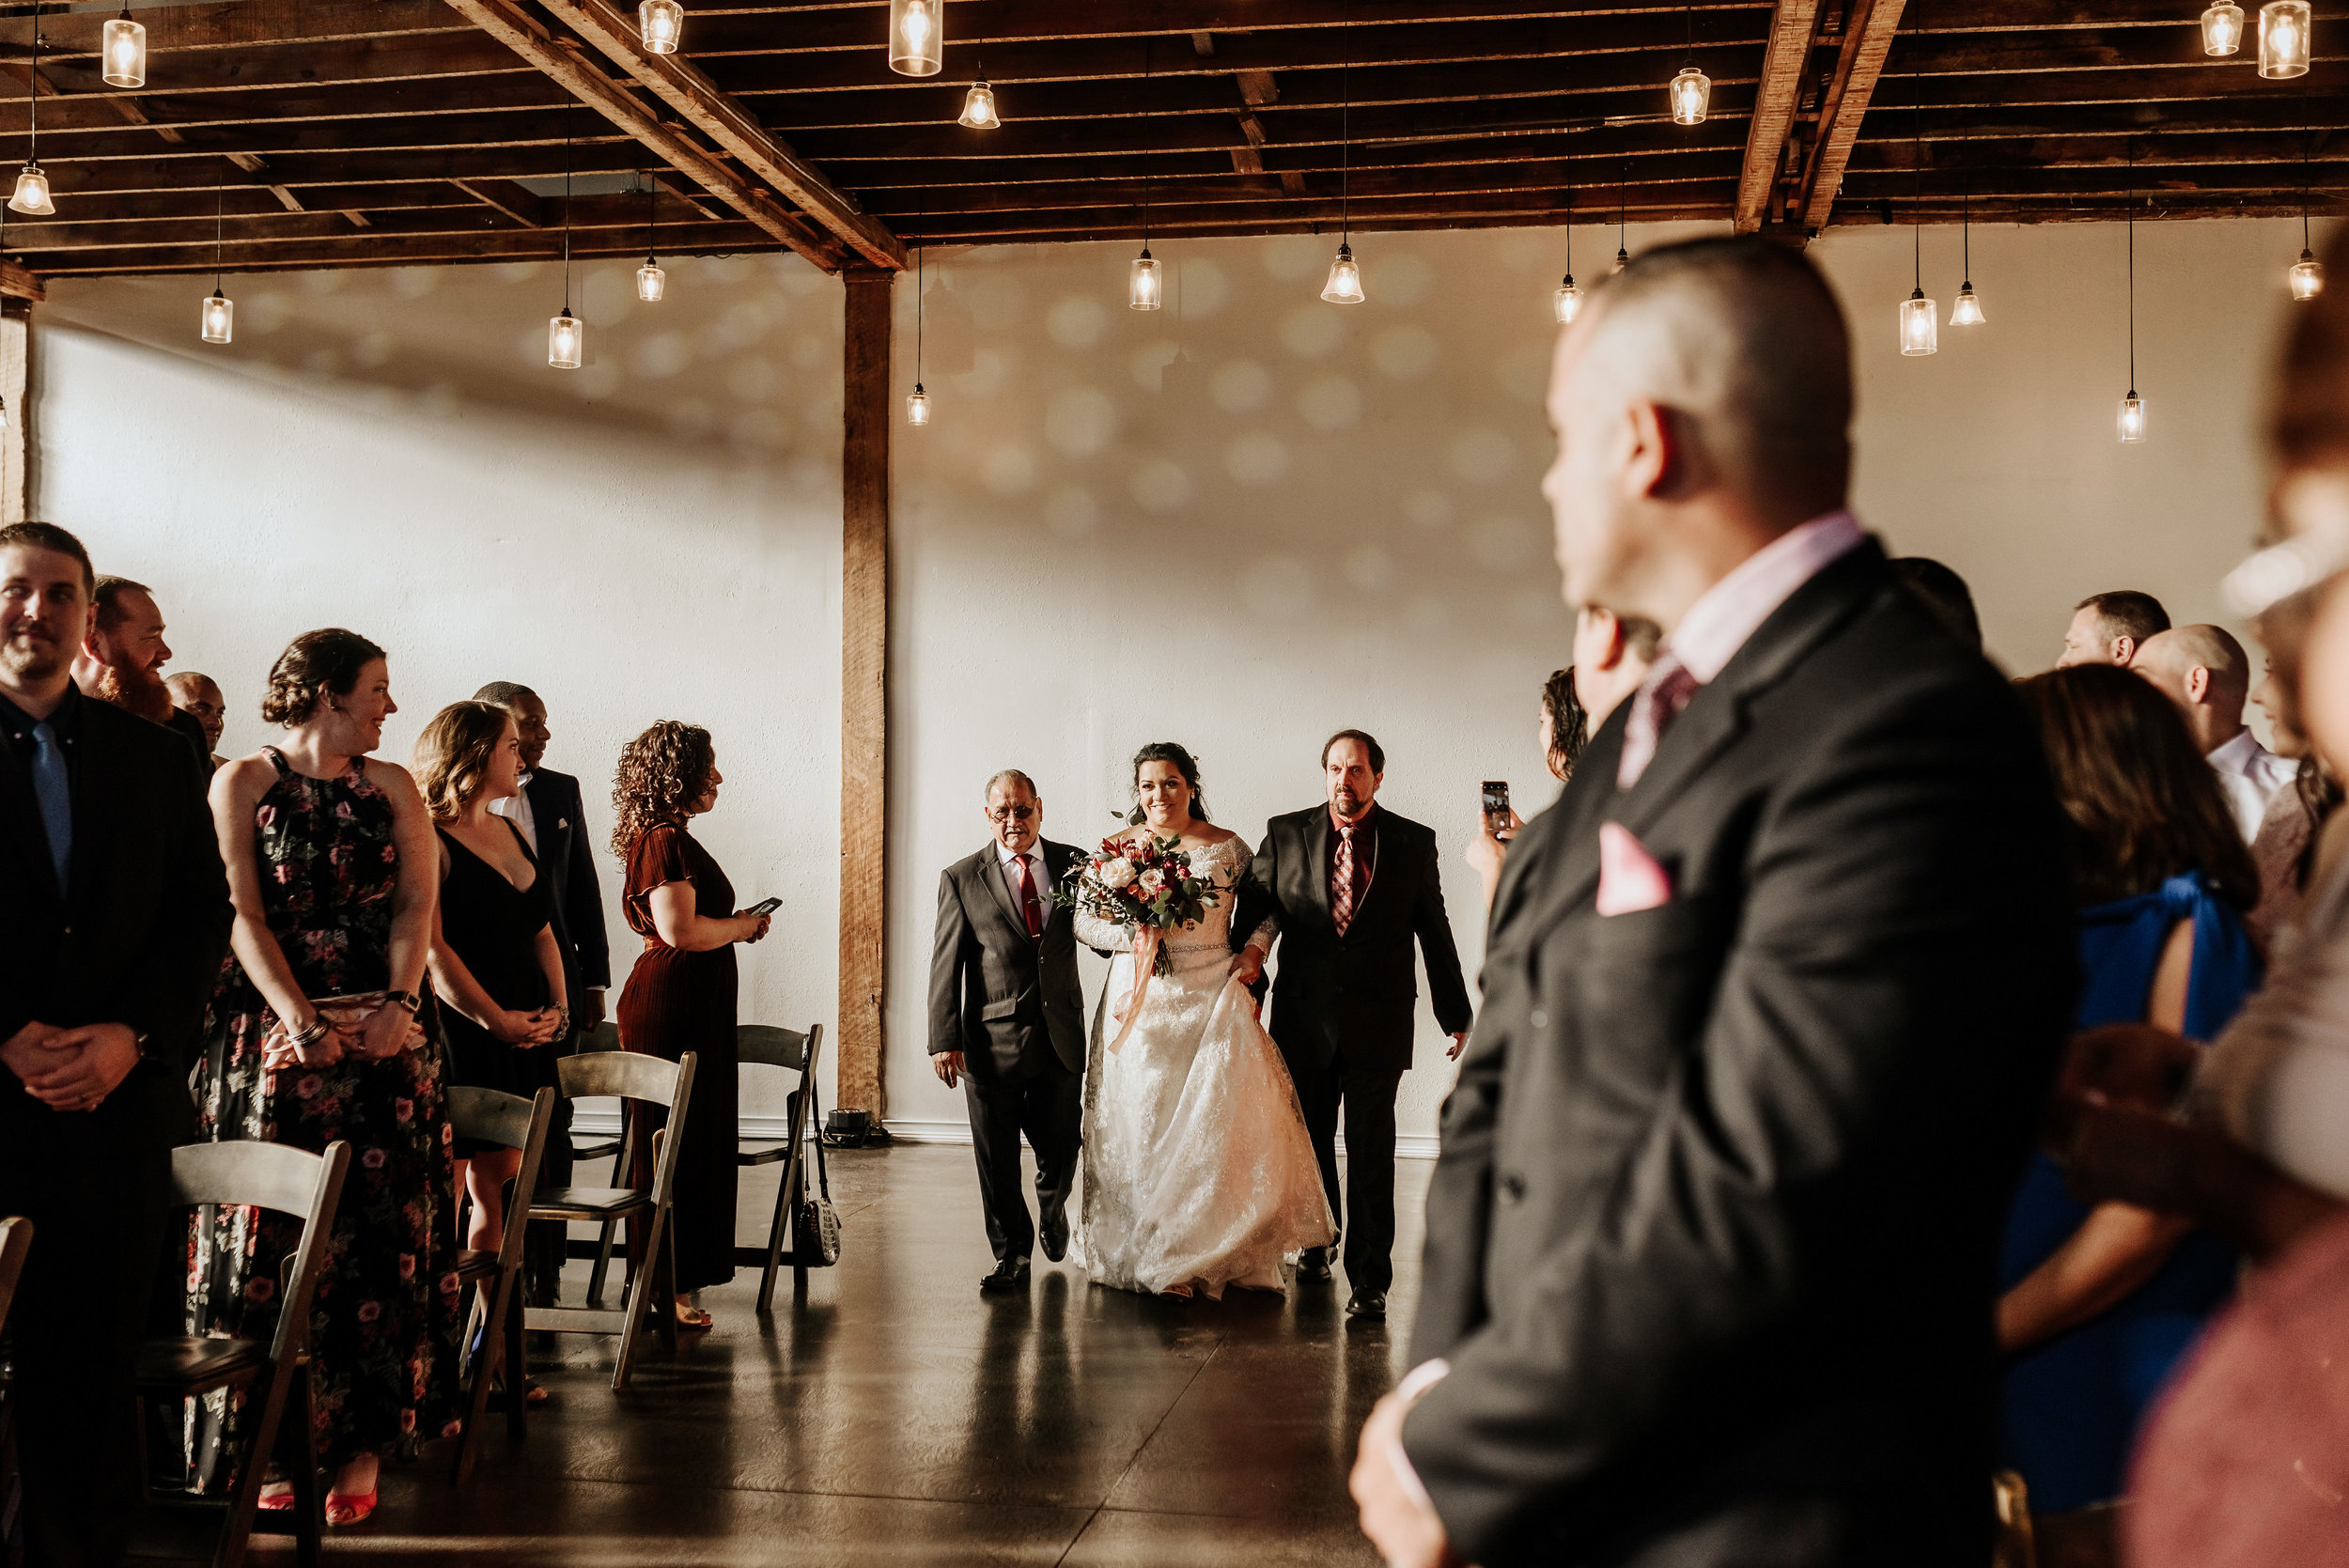 Melissa_Chris_Wedding_Cavu_Tampa_Foundation_Coffee_Photography_by_V_2019.jpg